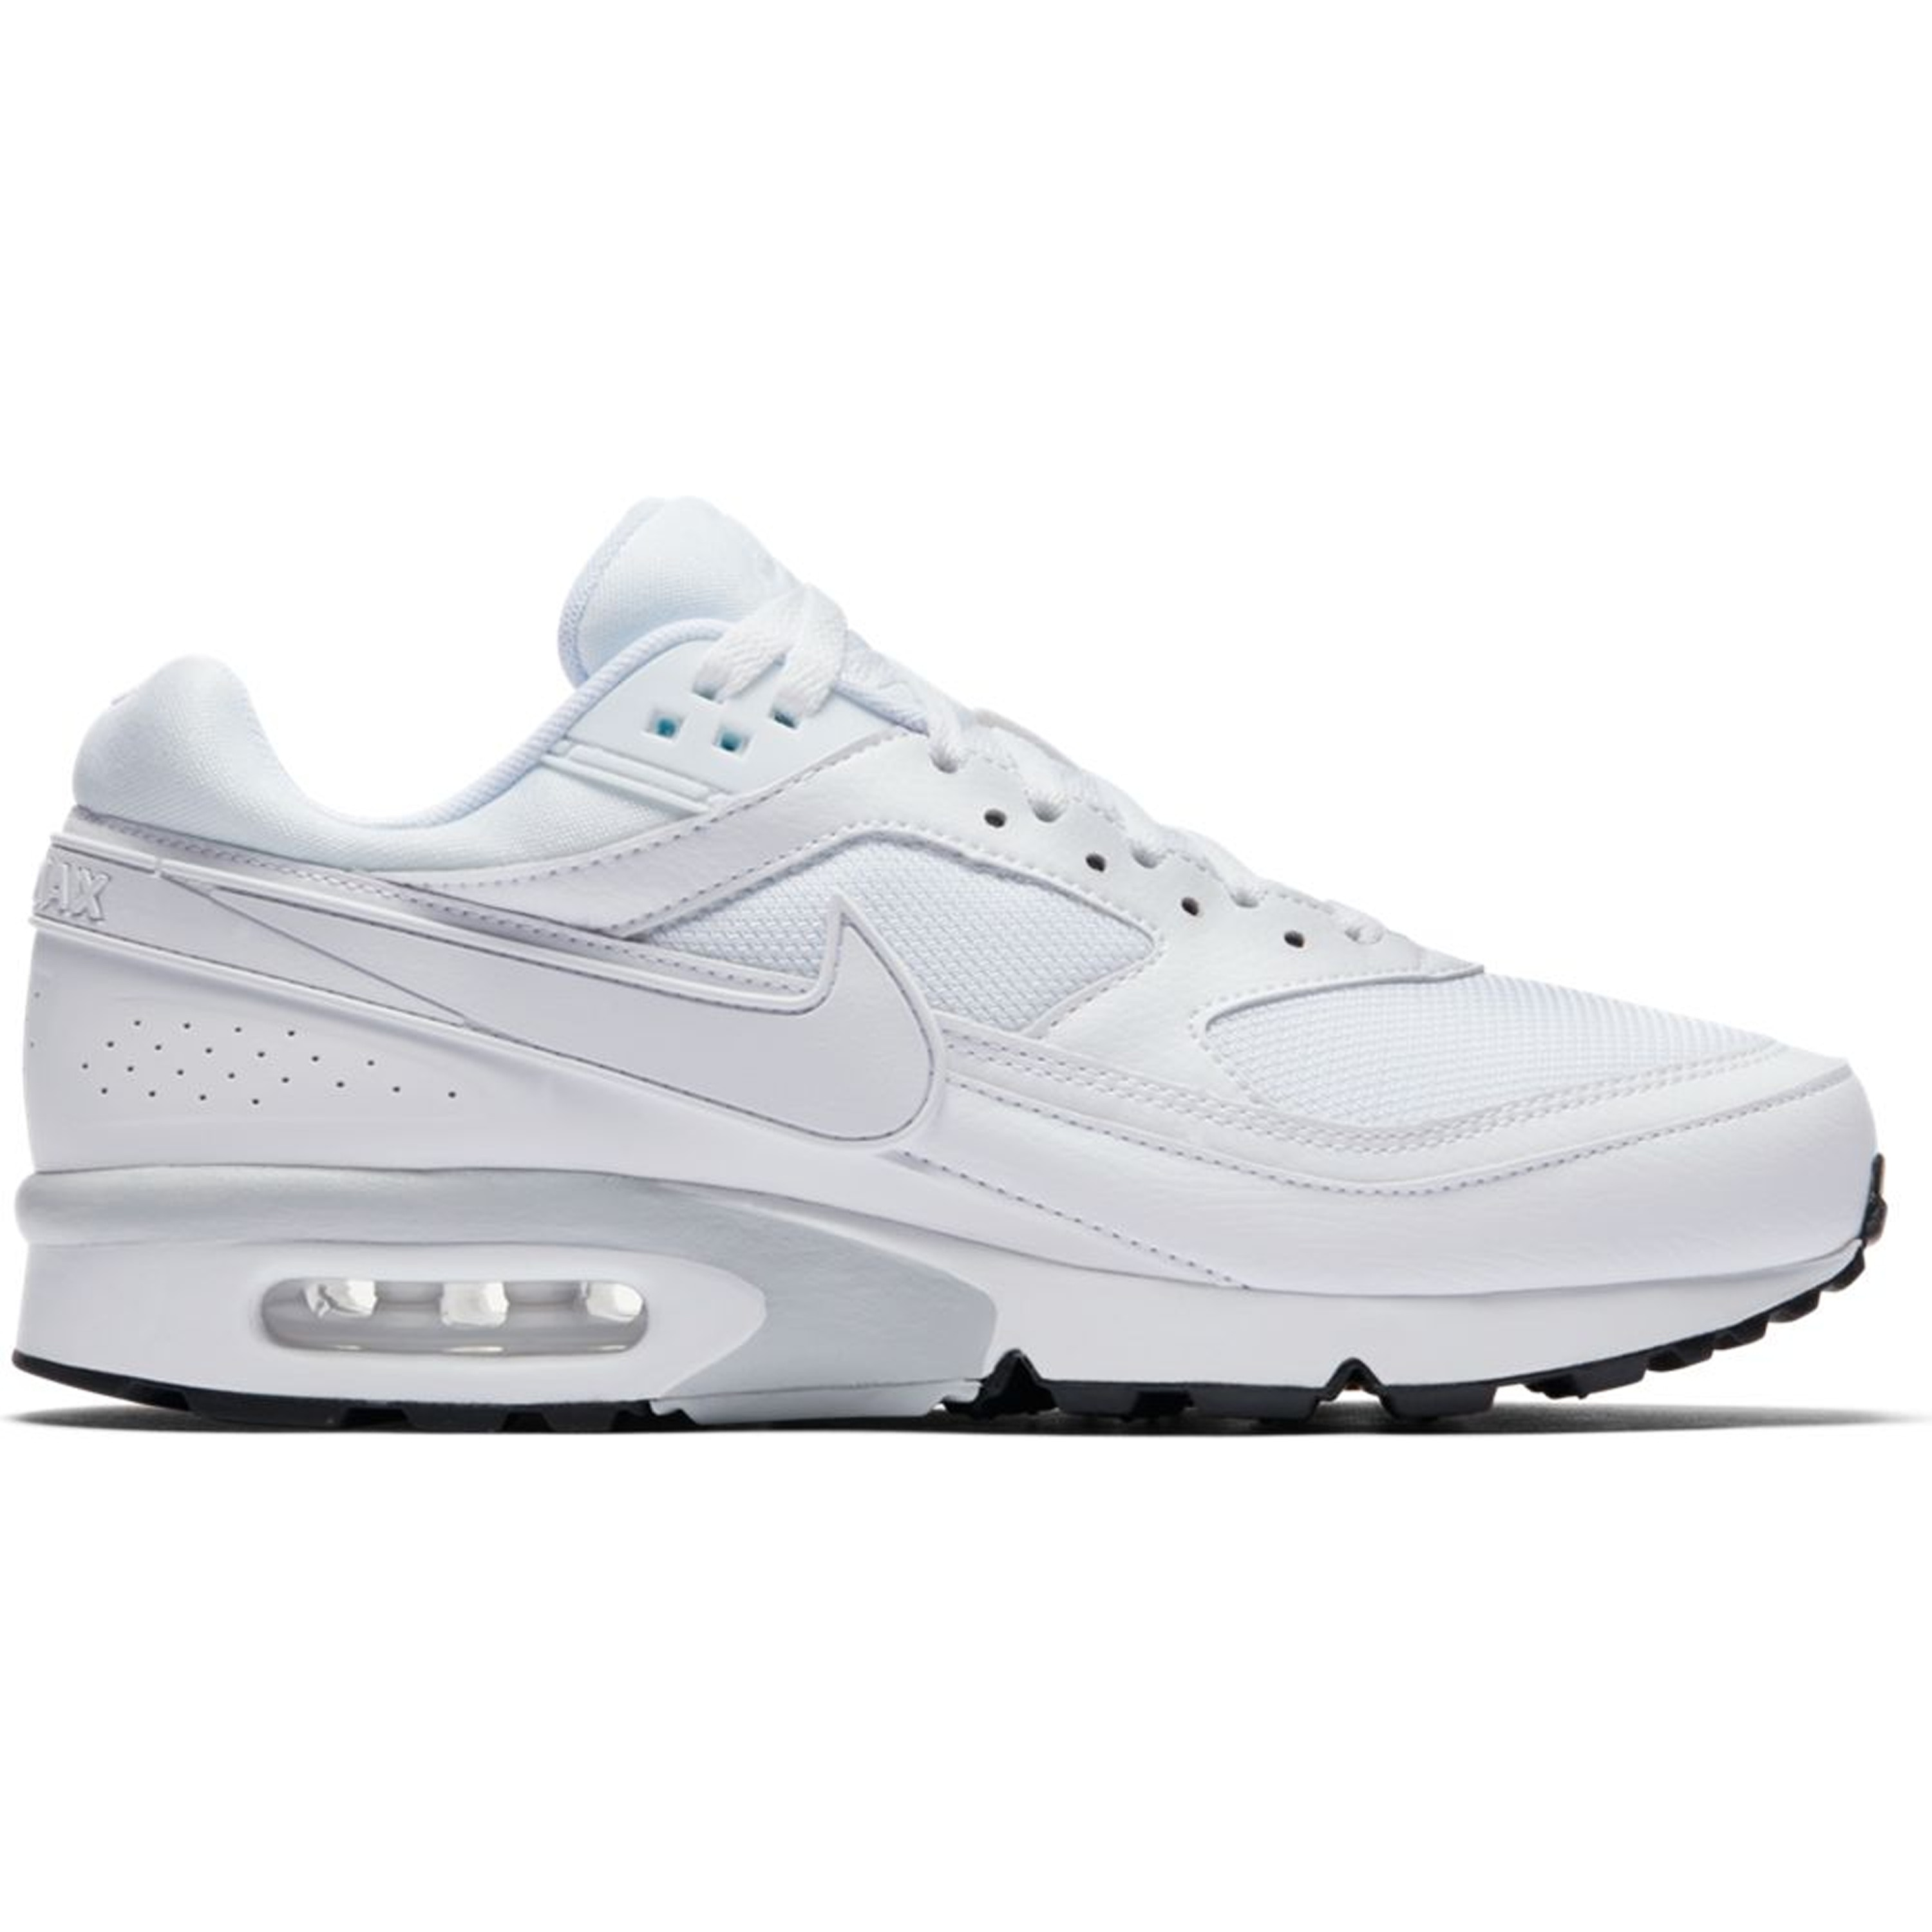 Nike Air Max BW White Pure Platinum (881981 100)